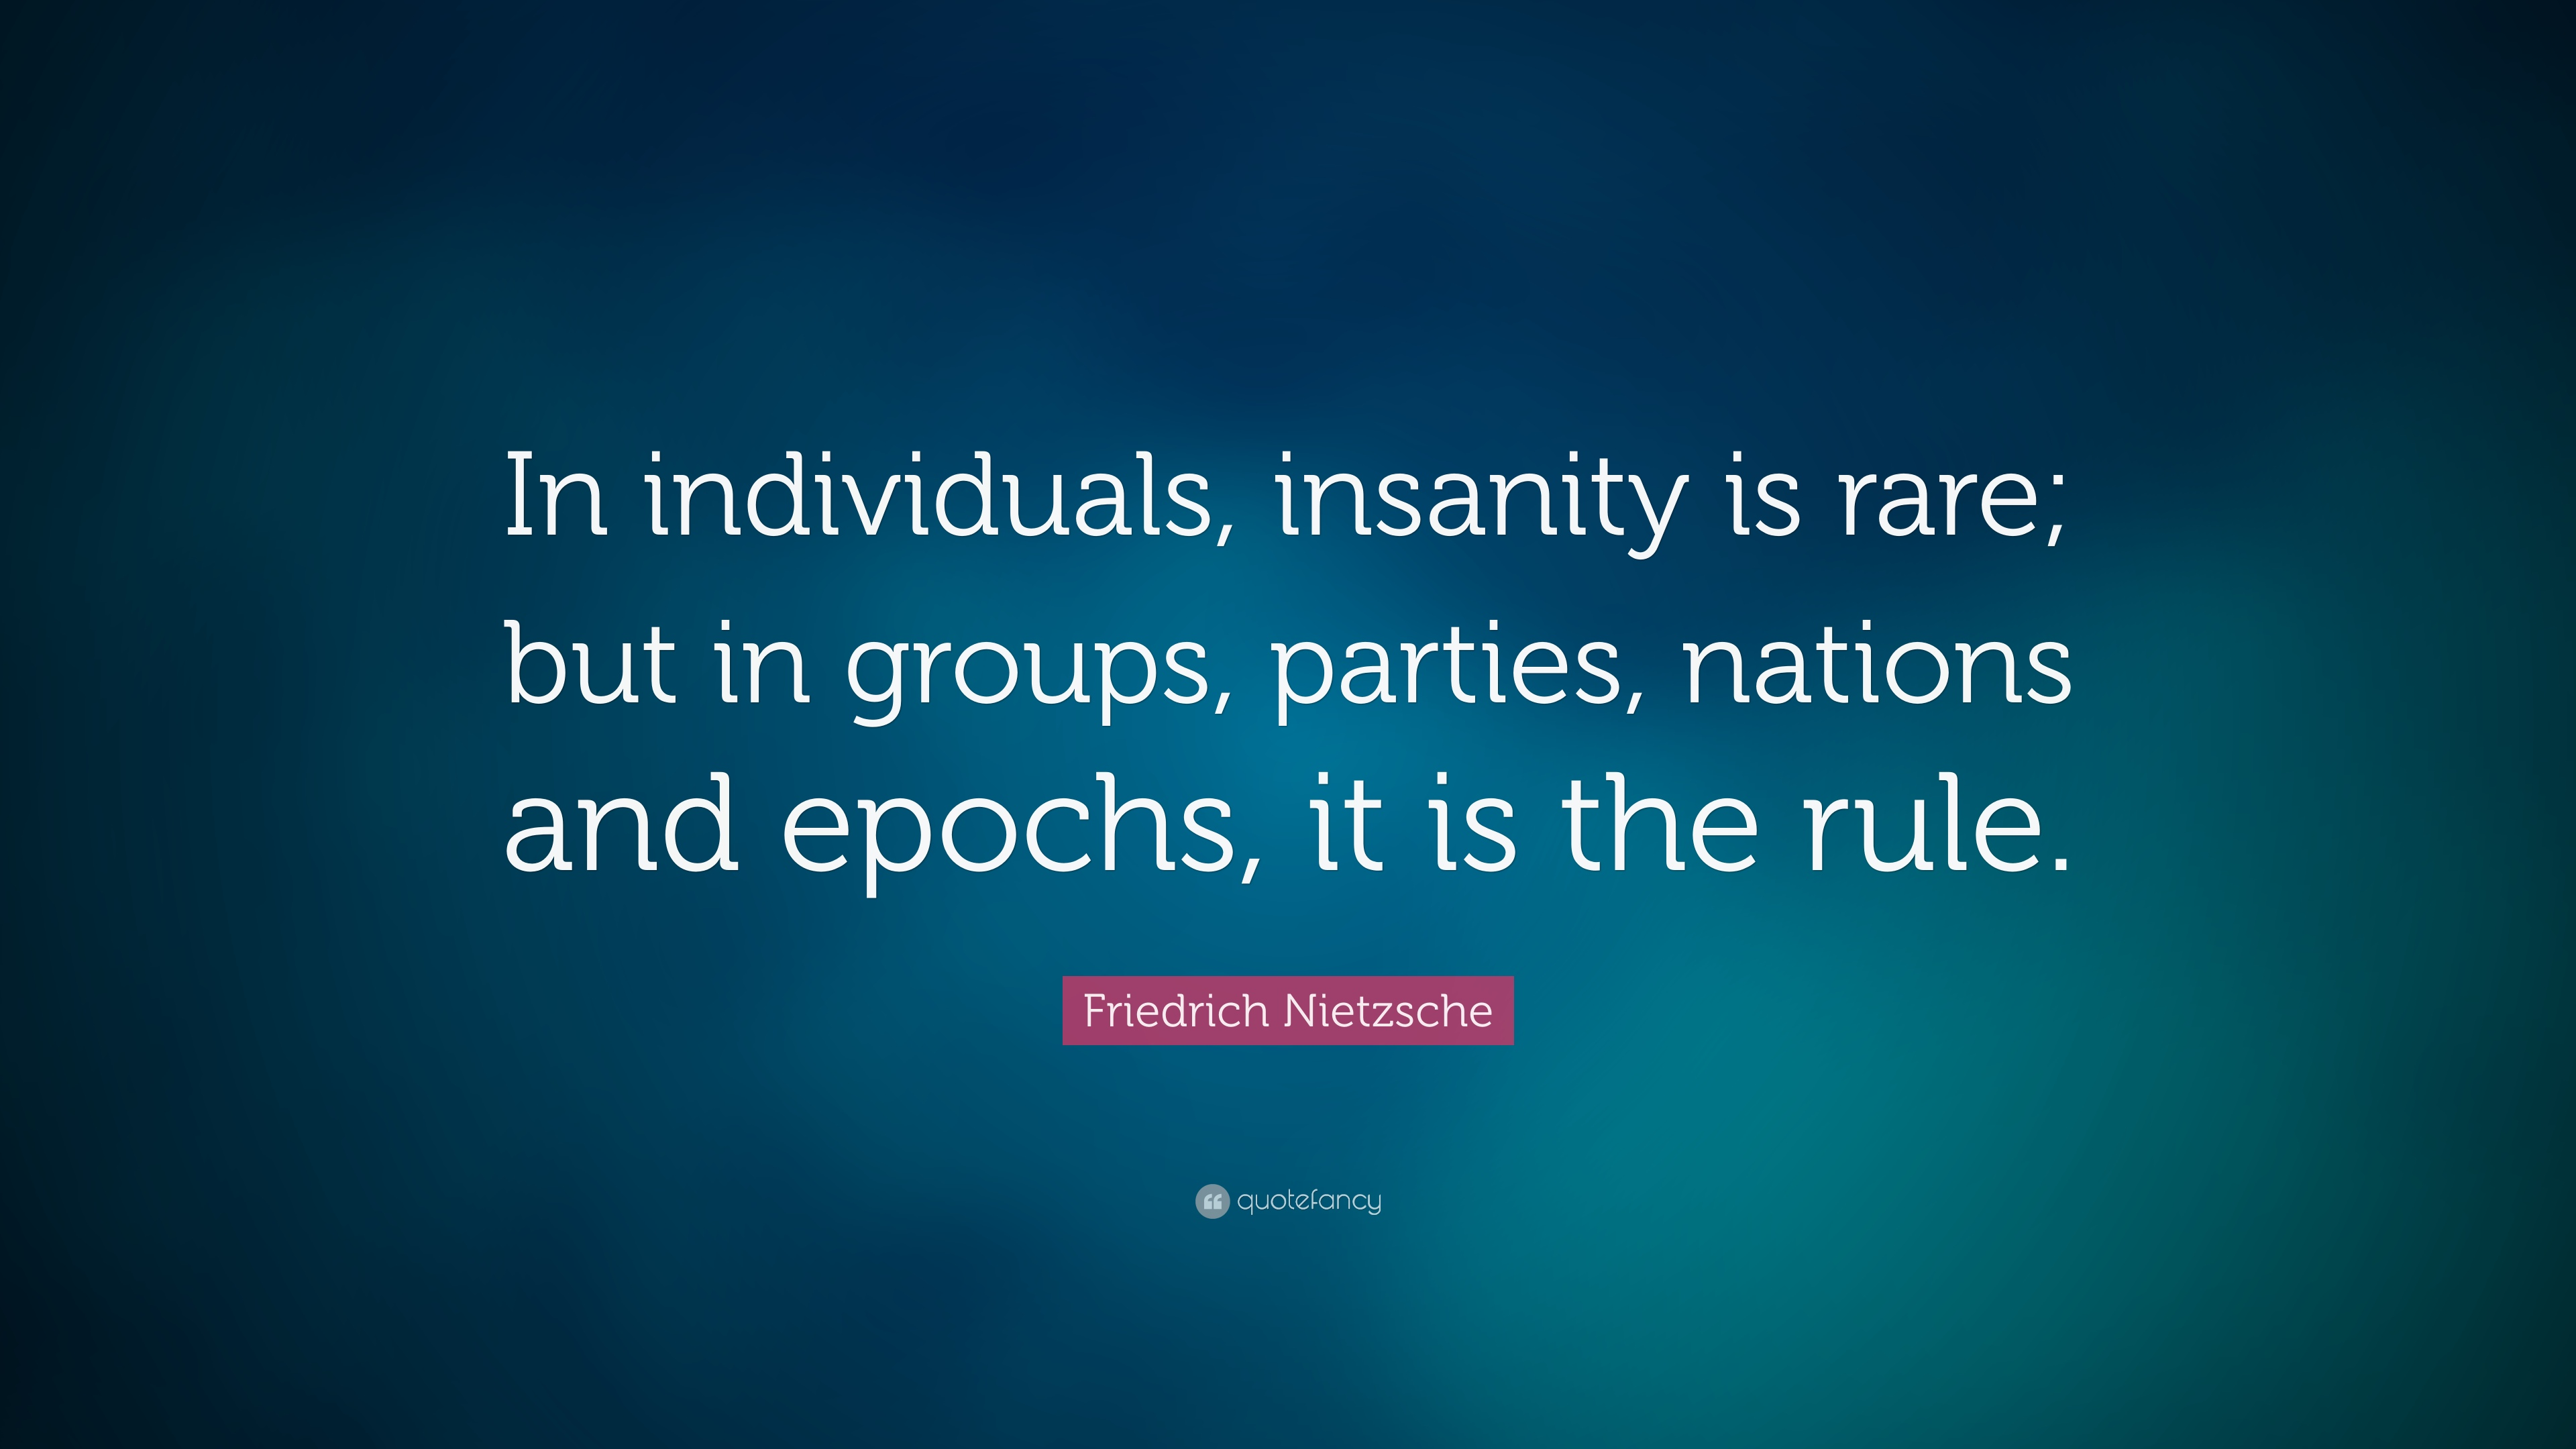 Friedrich Nietzsche Quote In Individuals Insanity Is Rare But In